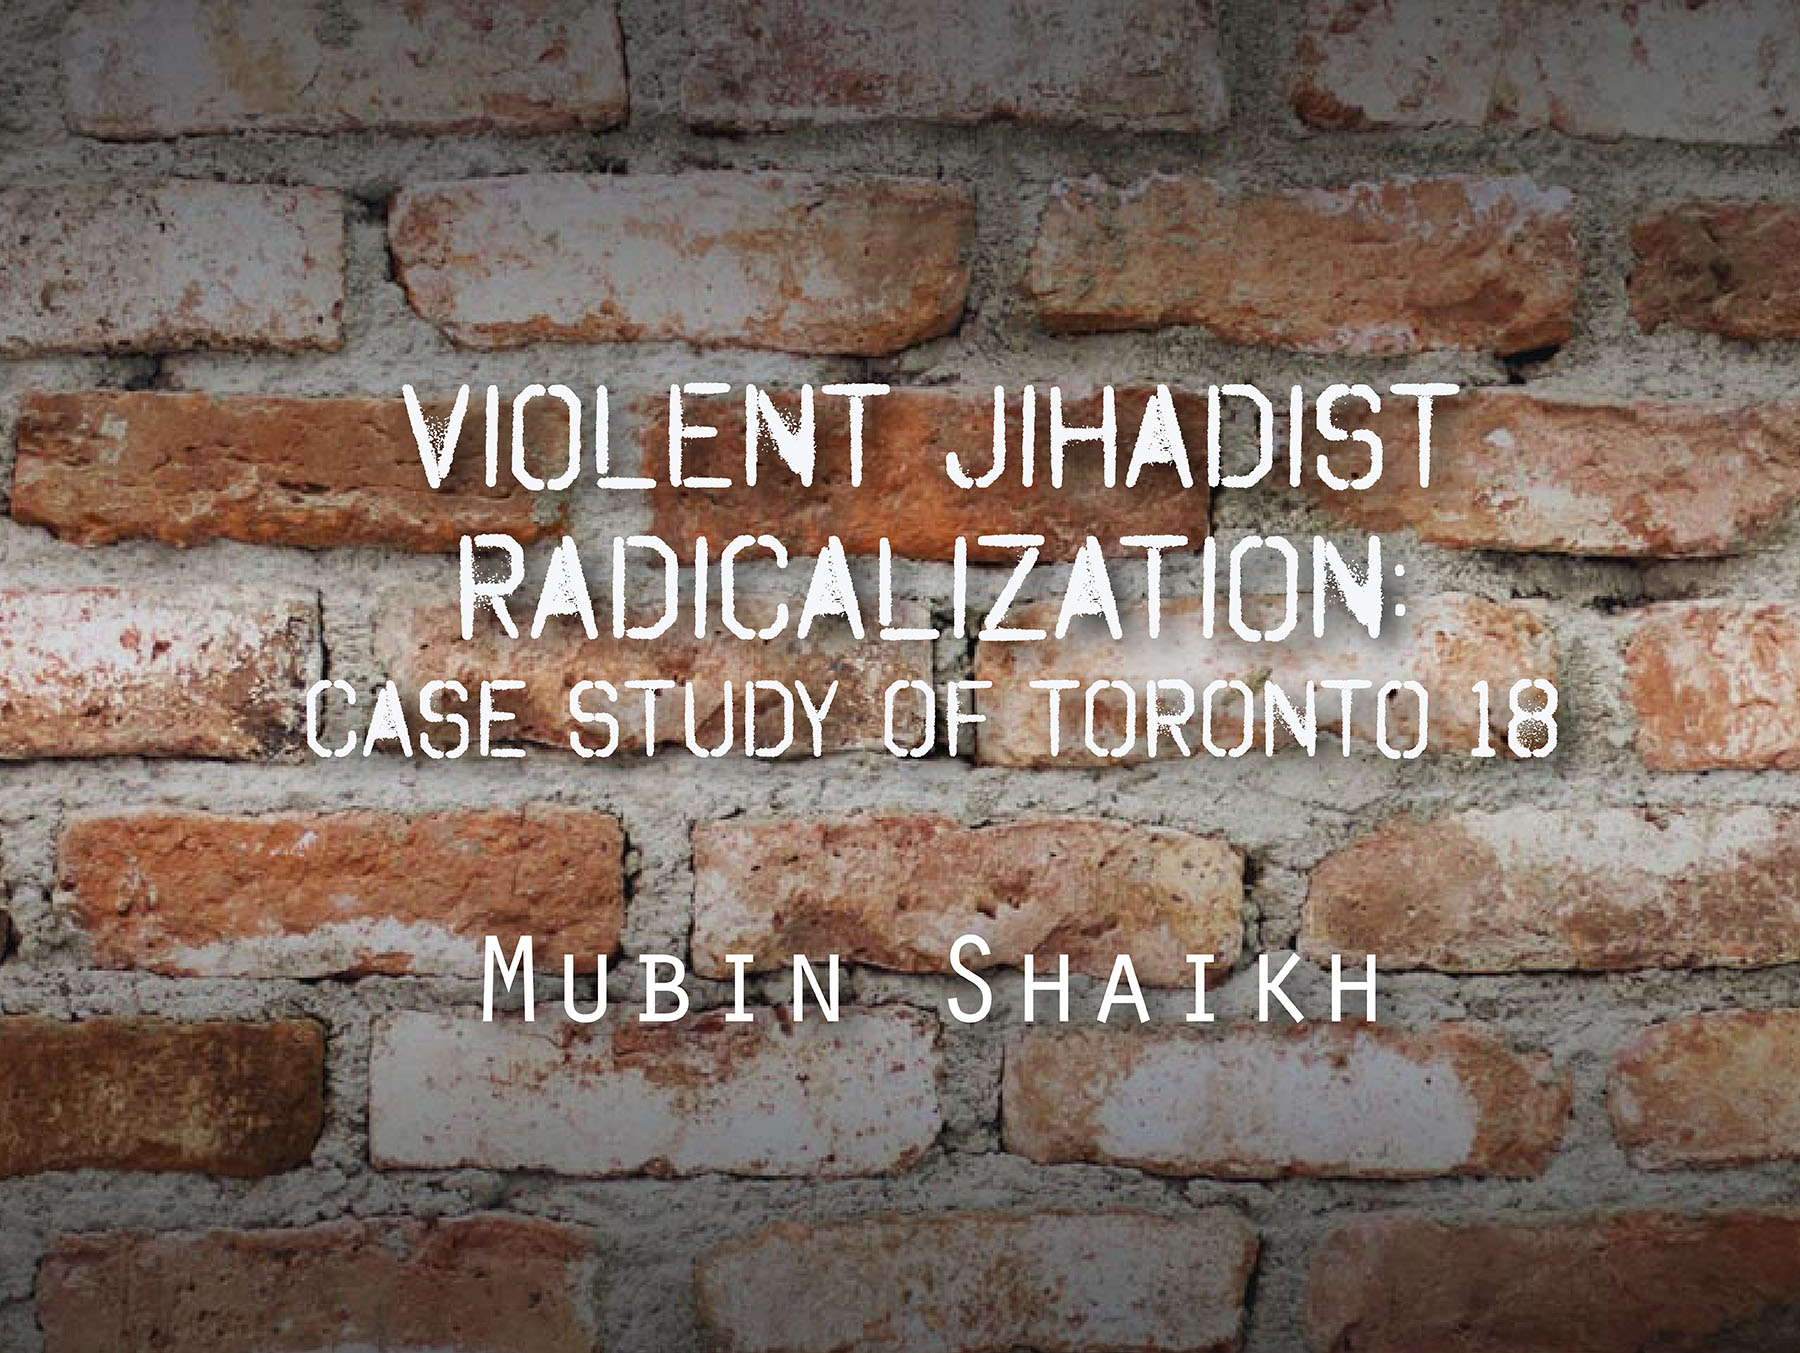 Violent Jihadist Radicalization: Case Study of the Toronto 18